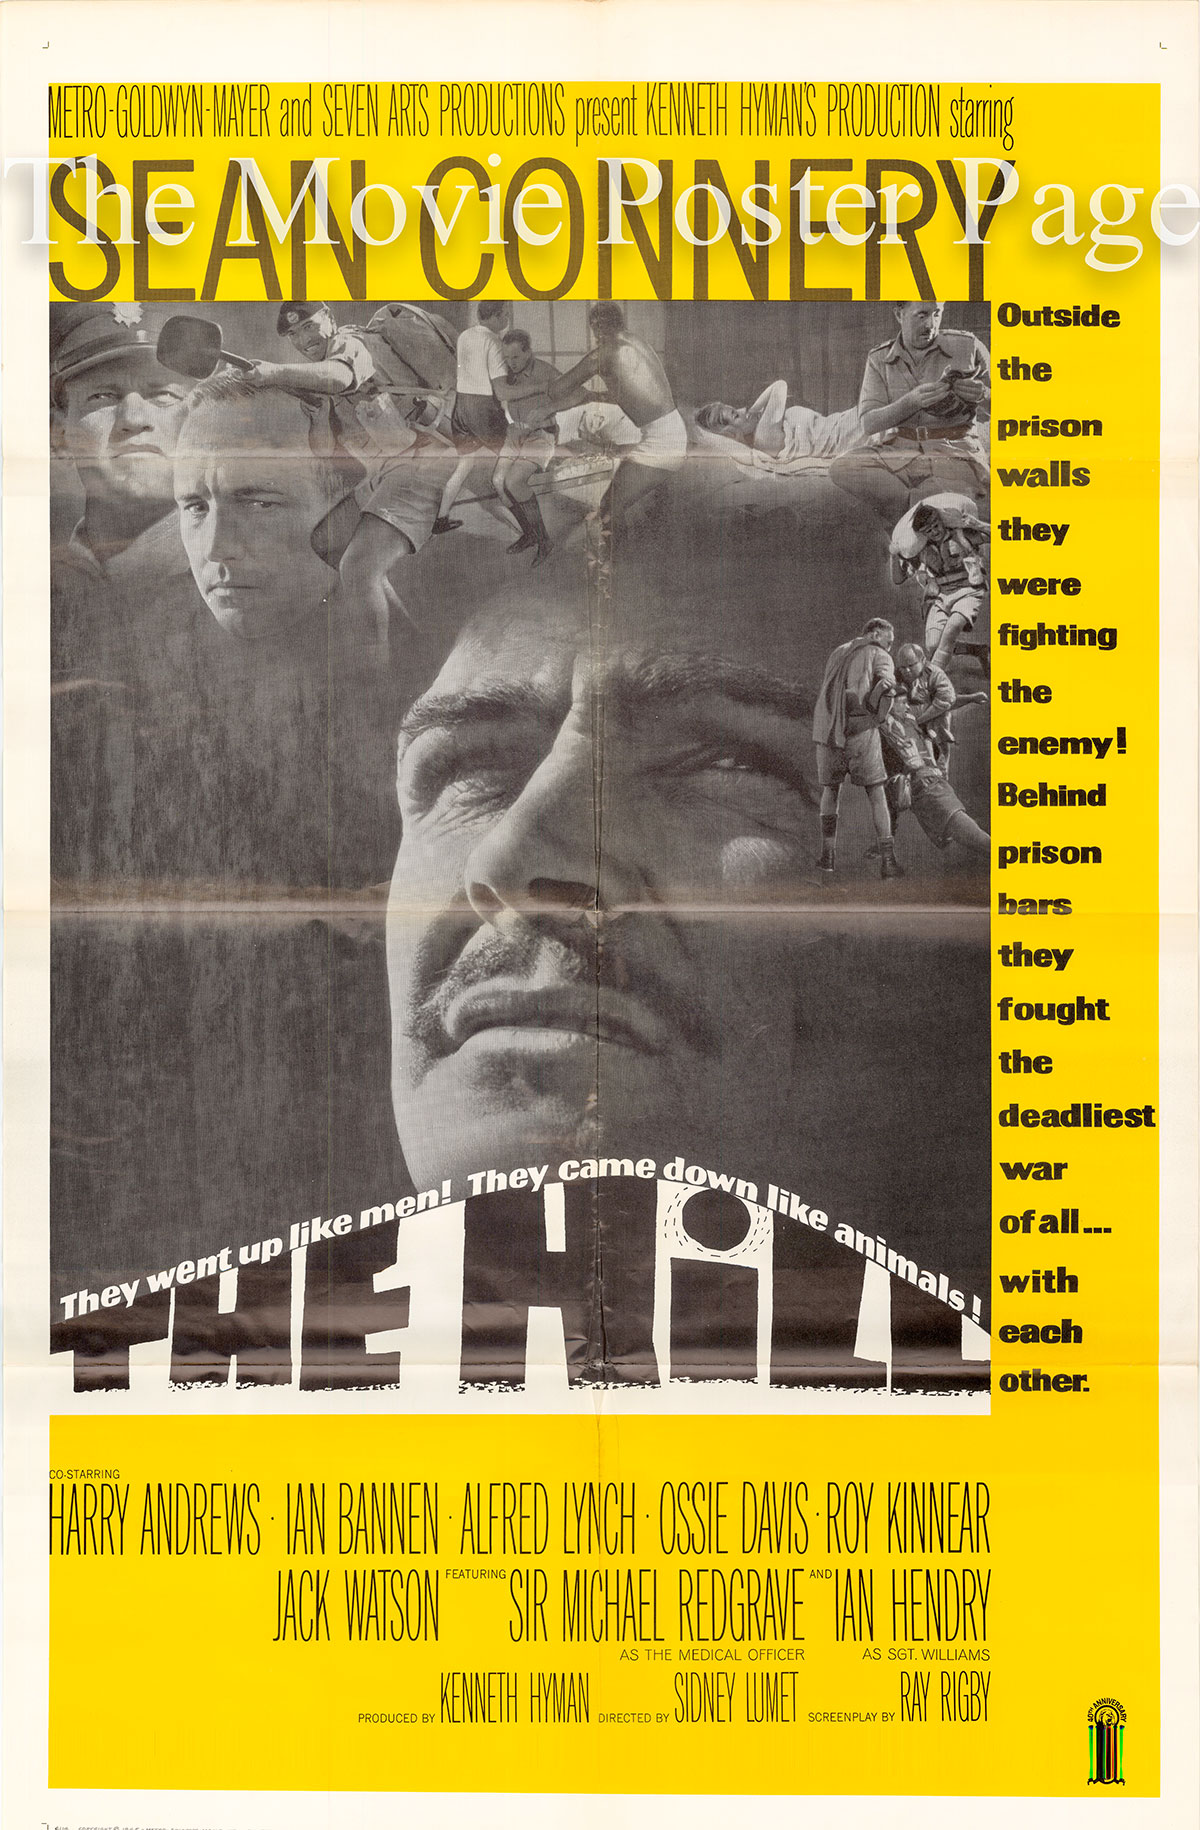 Pictured is a US one-sheet poster for the 1965 Sidney Lumet film The Hill starring Sean Connery.